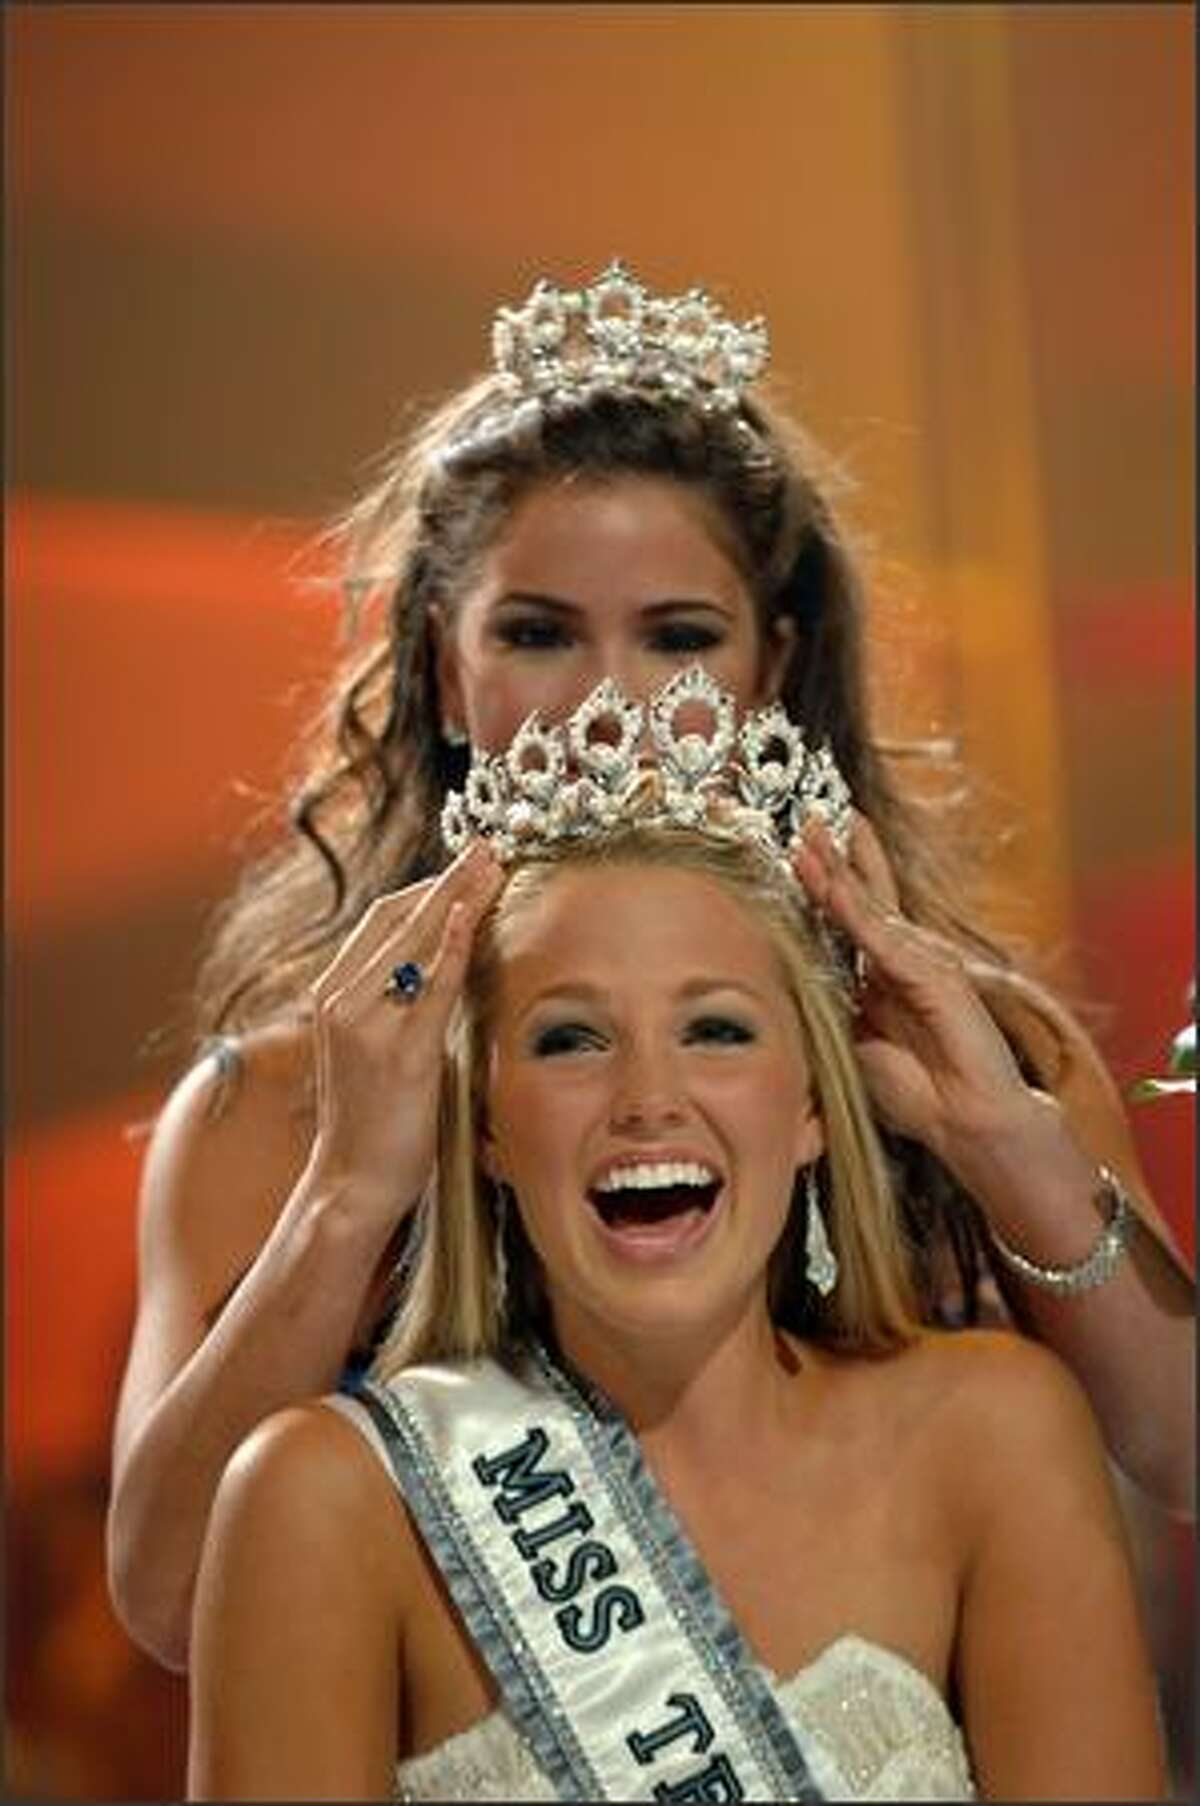 Allie LaForce reacts while being crowned Miss Teen USA 2005 by Shelley Hennig, Miss Teen USA 2004.